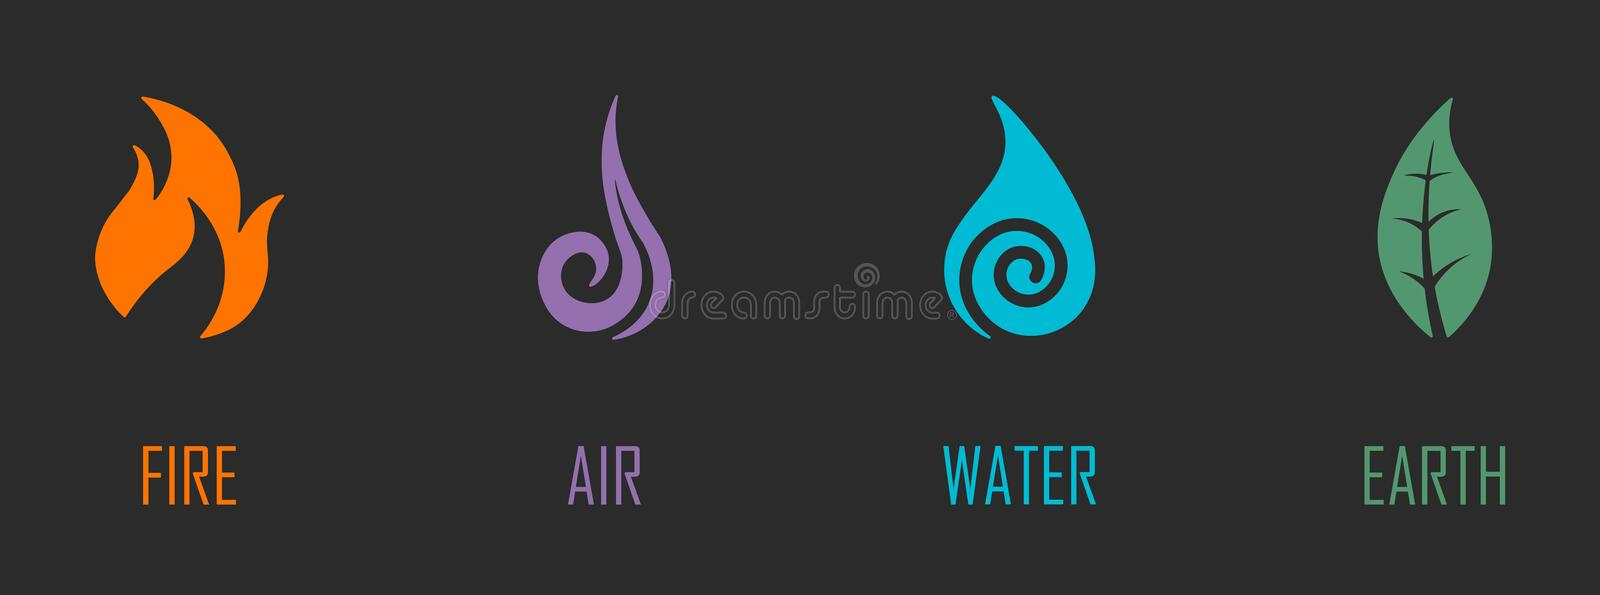 Abstract Four Elements Fire, Air, Water, Earth Symbols royalty free illustration